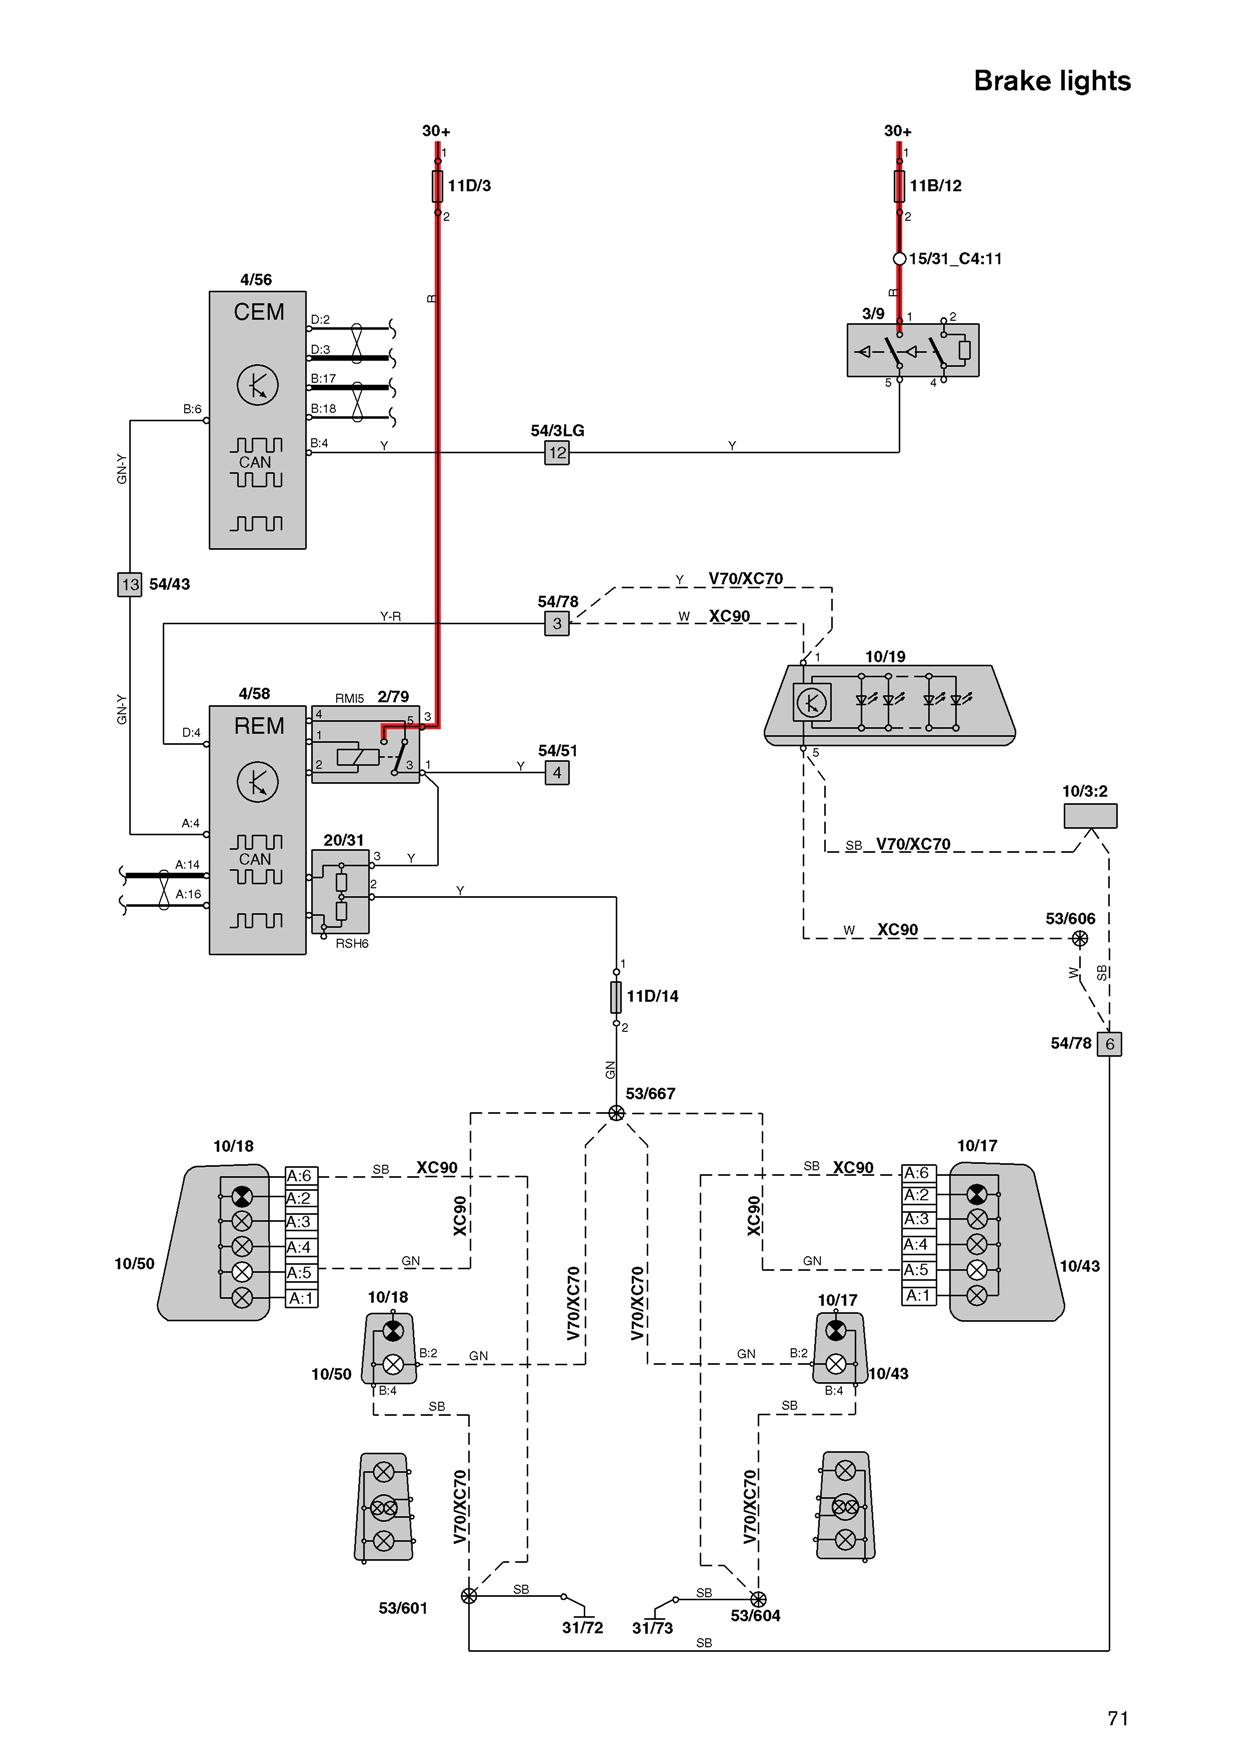 Ford E350 Fuse Box Location Wiring Diagram Wiringdiagramlima E 350 Tail Light 2001 Volvo S40 Radio